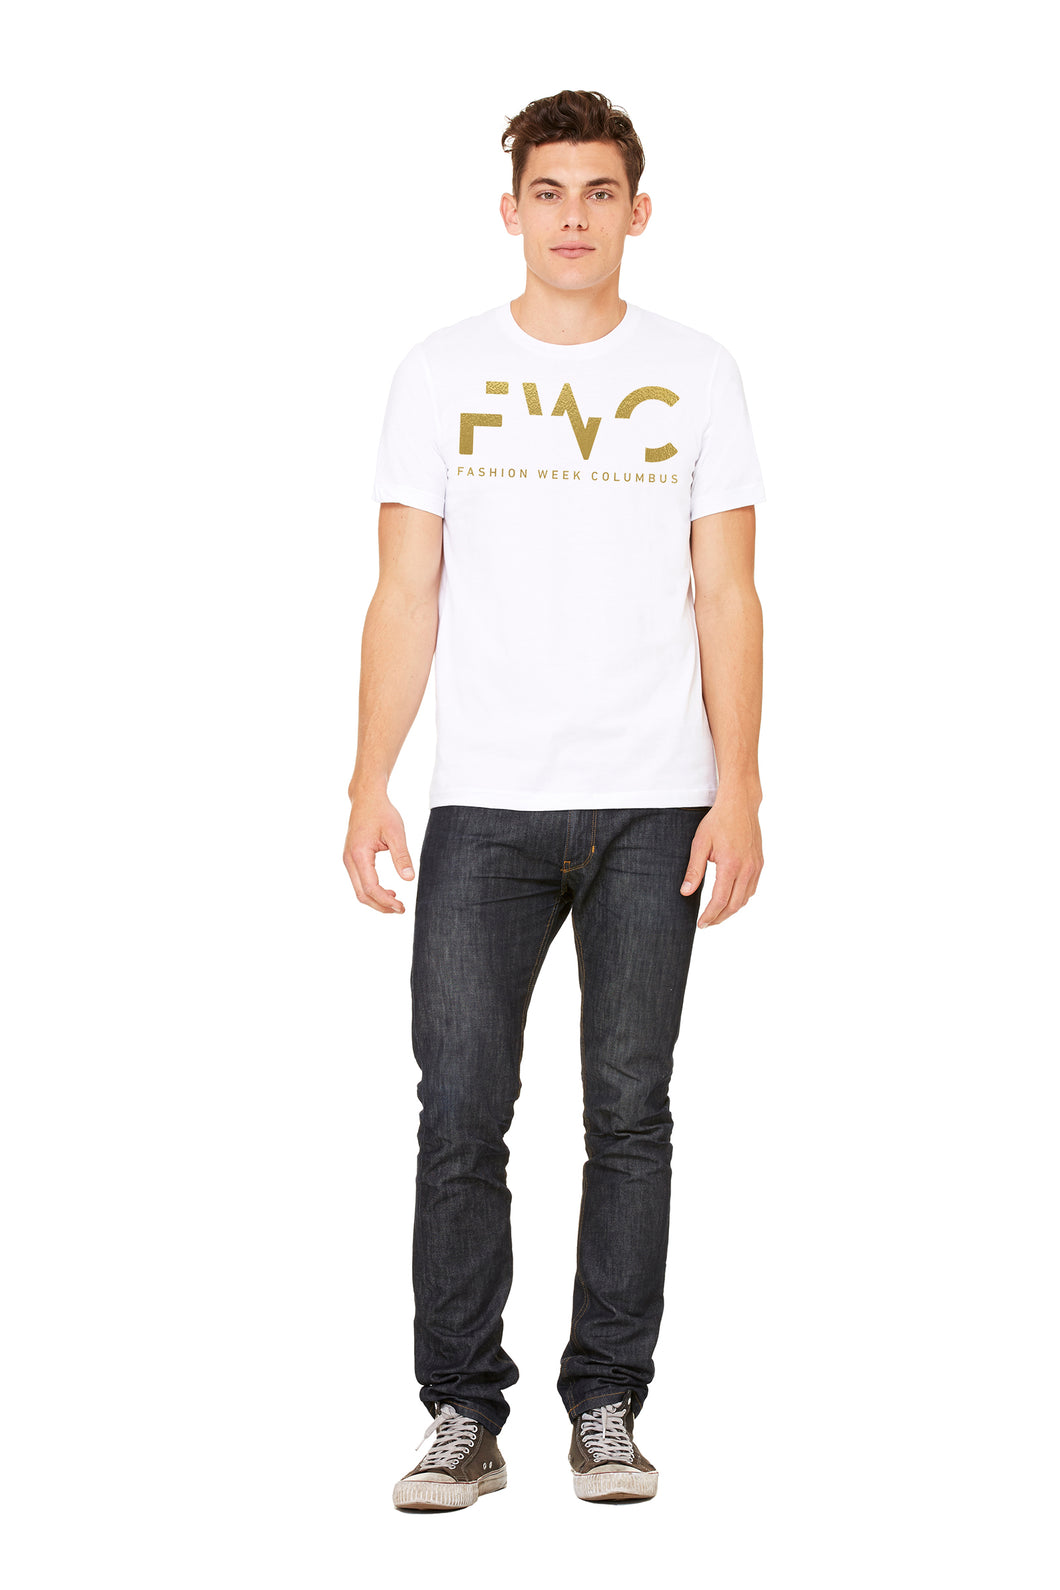 FWC Unisex White Tee - Fashion Week Columbus